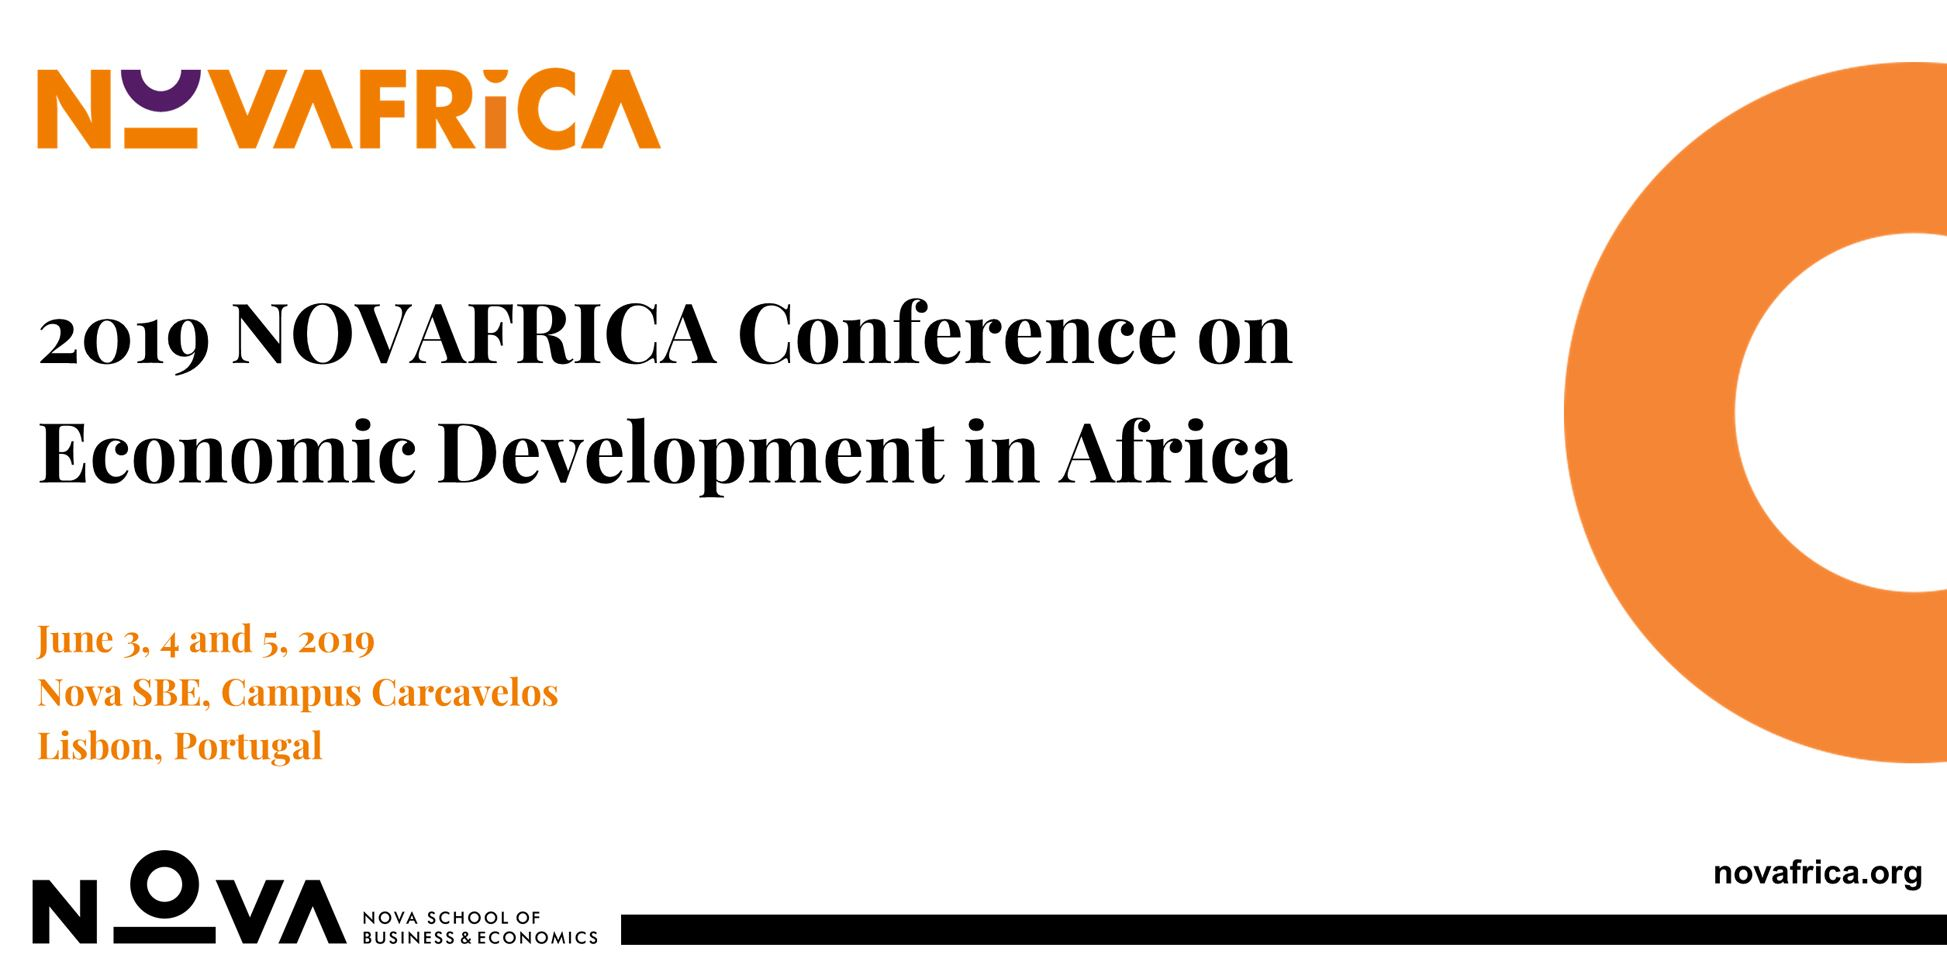 2019 NOVAFRICA Conference on Economic Development in Africa